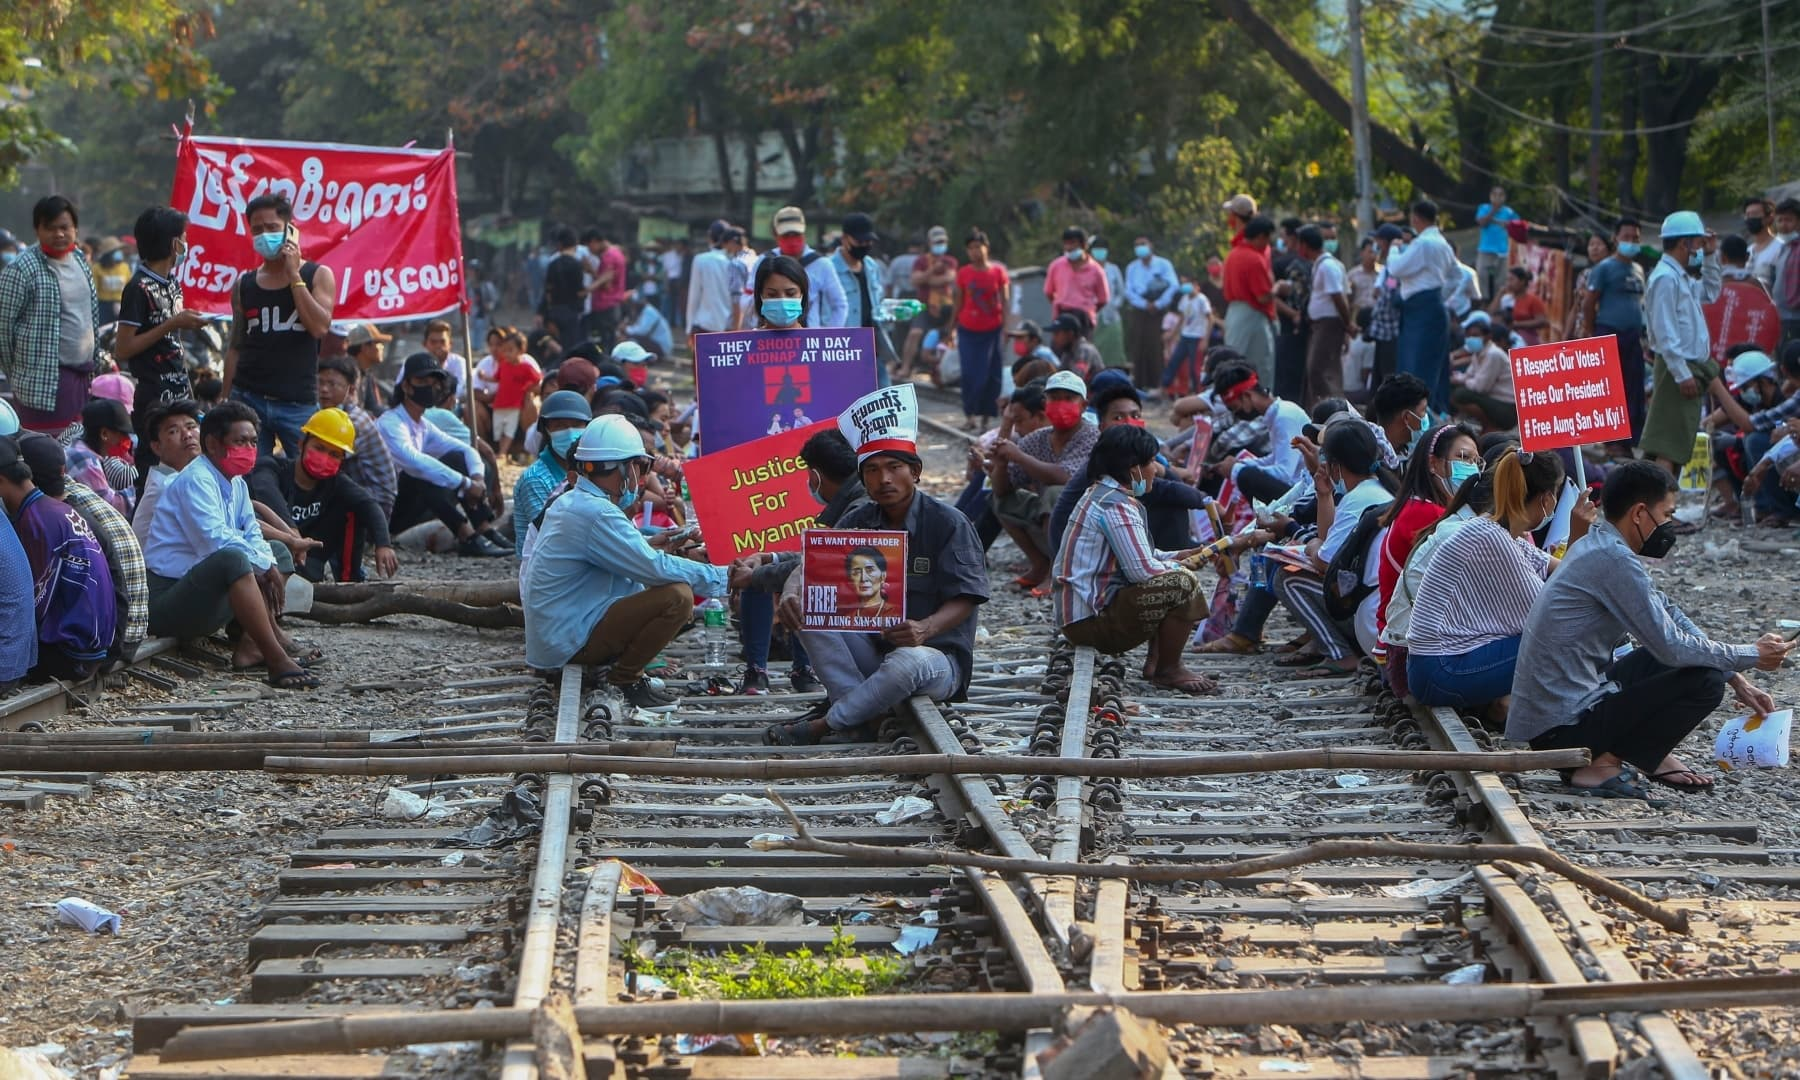 Demonstrators with placards sit on the railway tracks in an attempt to disrupt train service during a protest against the military coup in Mandalay, Myanmar on Wednesday, Feb 17. — AP